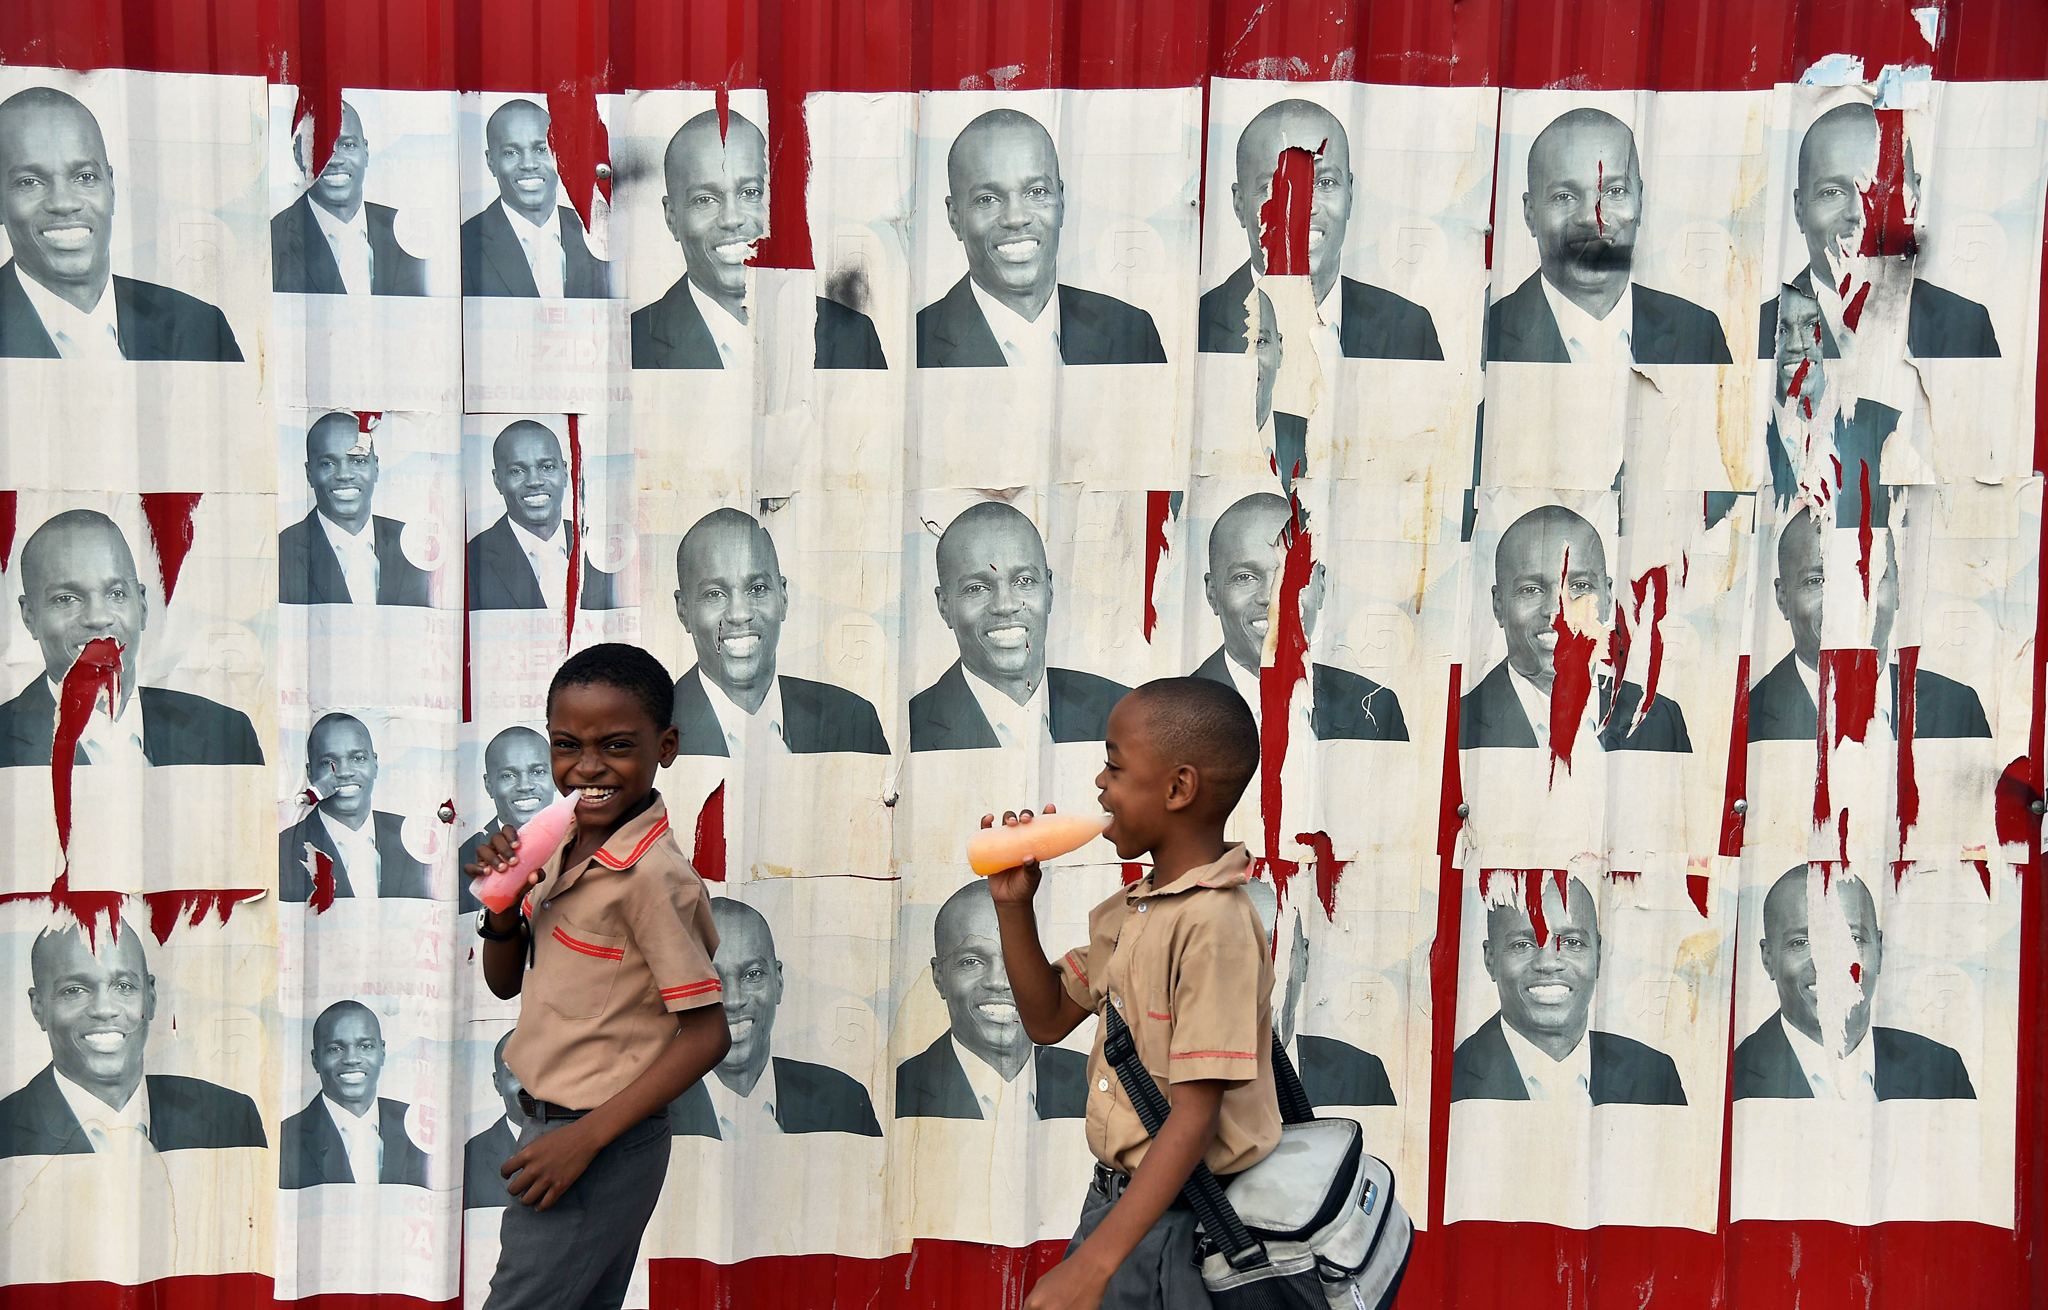 Children walk past election po...TOPSHOT - Children walk past election poster of presidential candidate Jovenel Moise of PHTK political party in Port-au-Prince on January 21, 2016.  The second round of presidential elections is scheduled for January 24 between ruling party candidate Jovenel Moise and Jude Celestin. Celestin has said he does not want to participate in the January 24 run-off against Moise, who has yet to submit his official resignation to the Provisional Electoral Council(CEP) / AFP / HECTOR RETAMALHECTOR RETAMAL/AFP/Getty Images